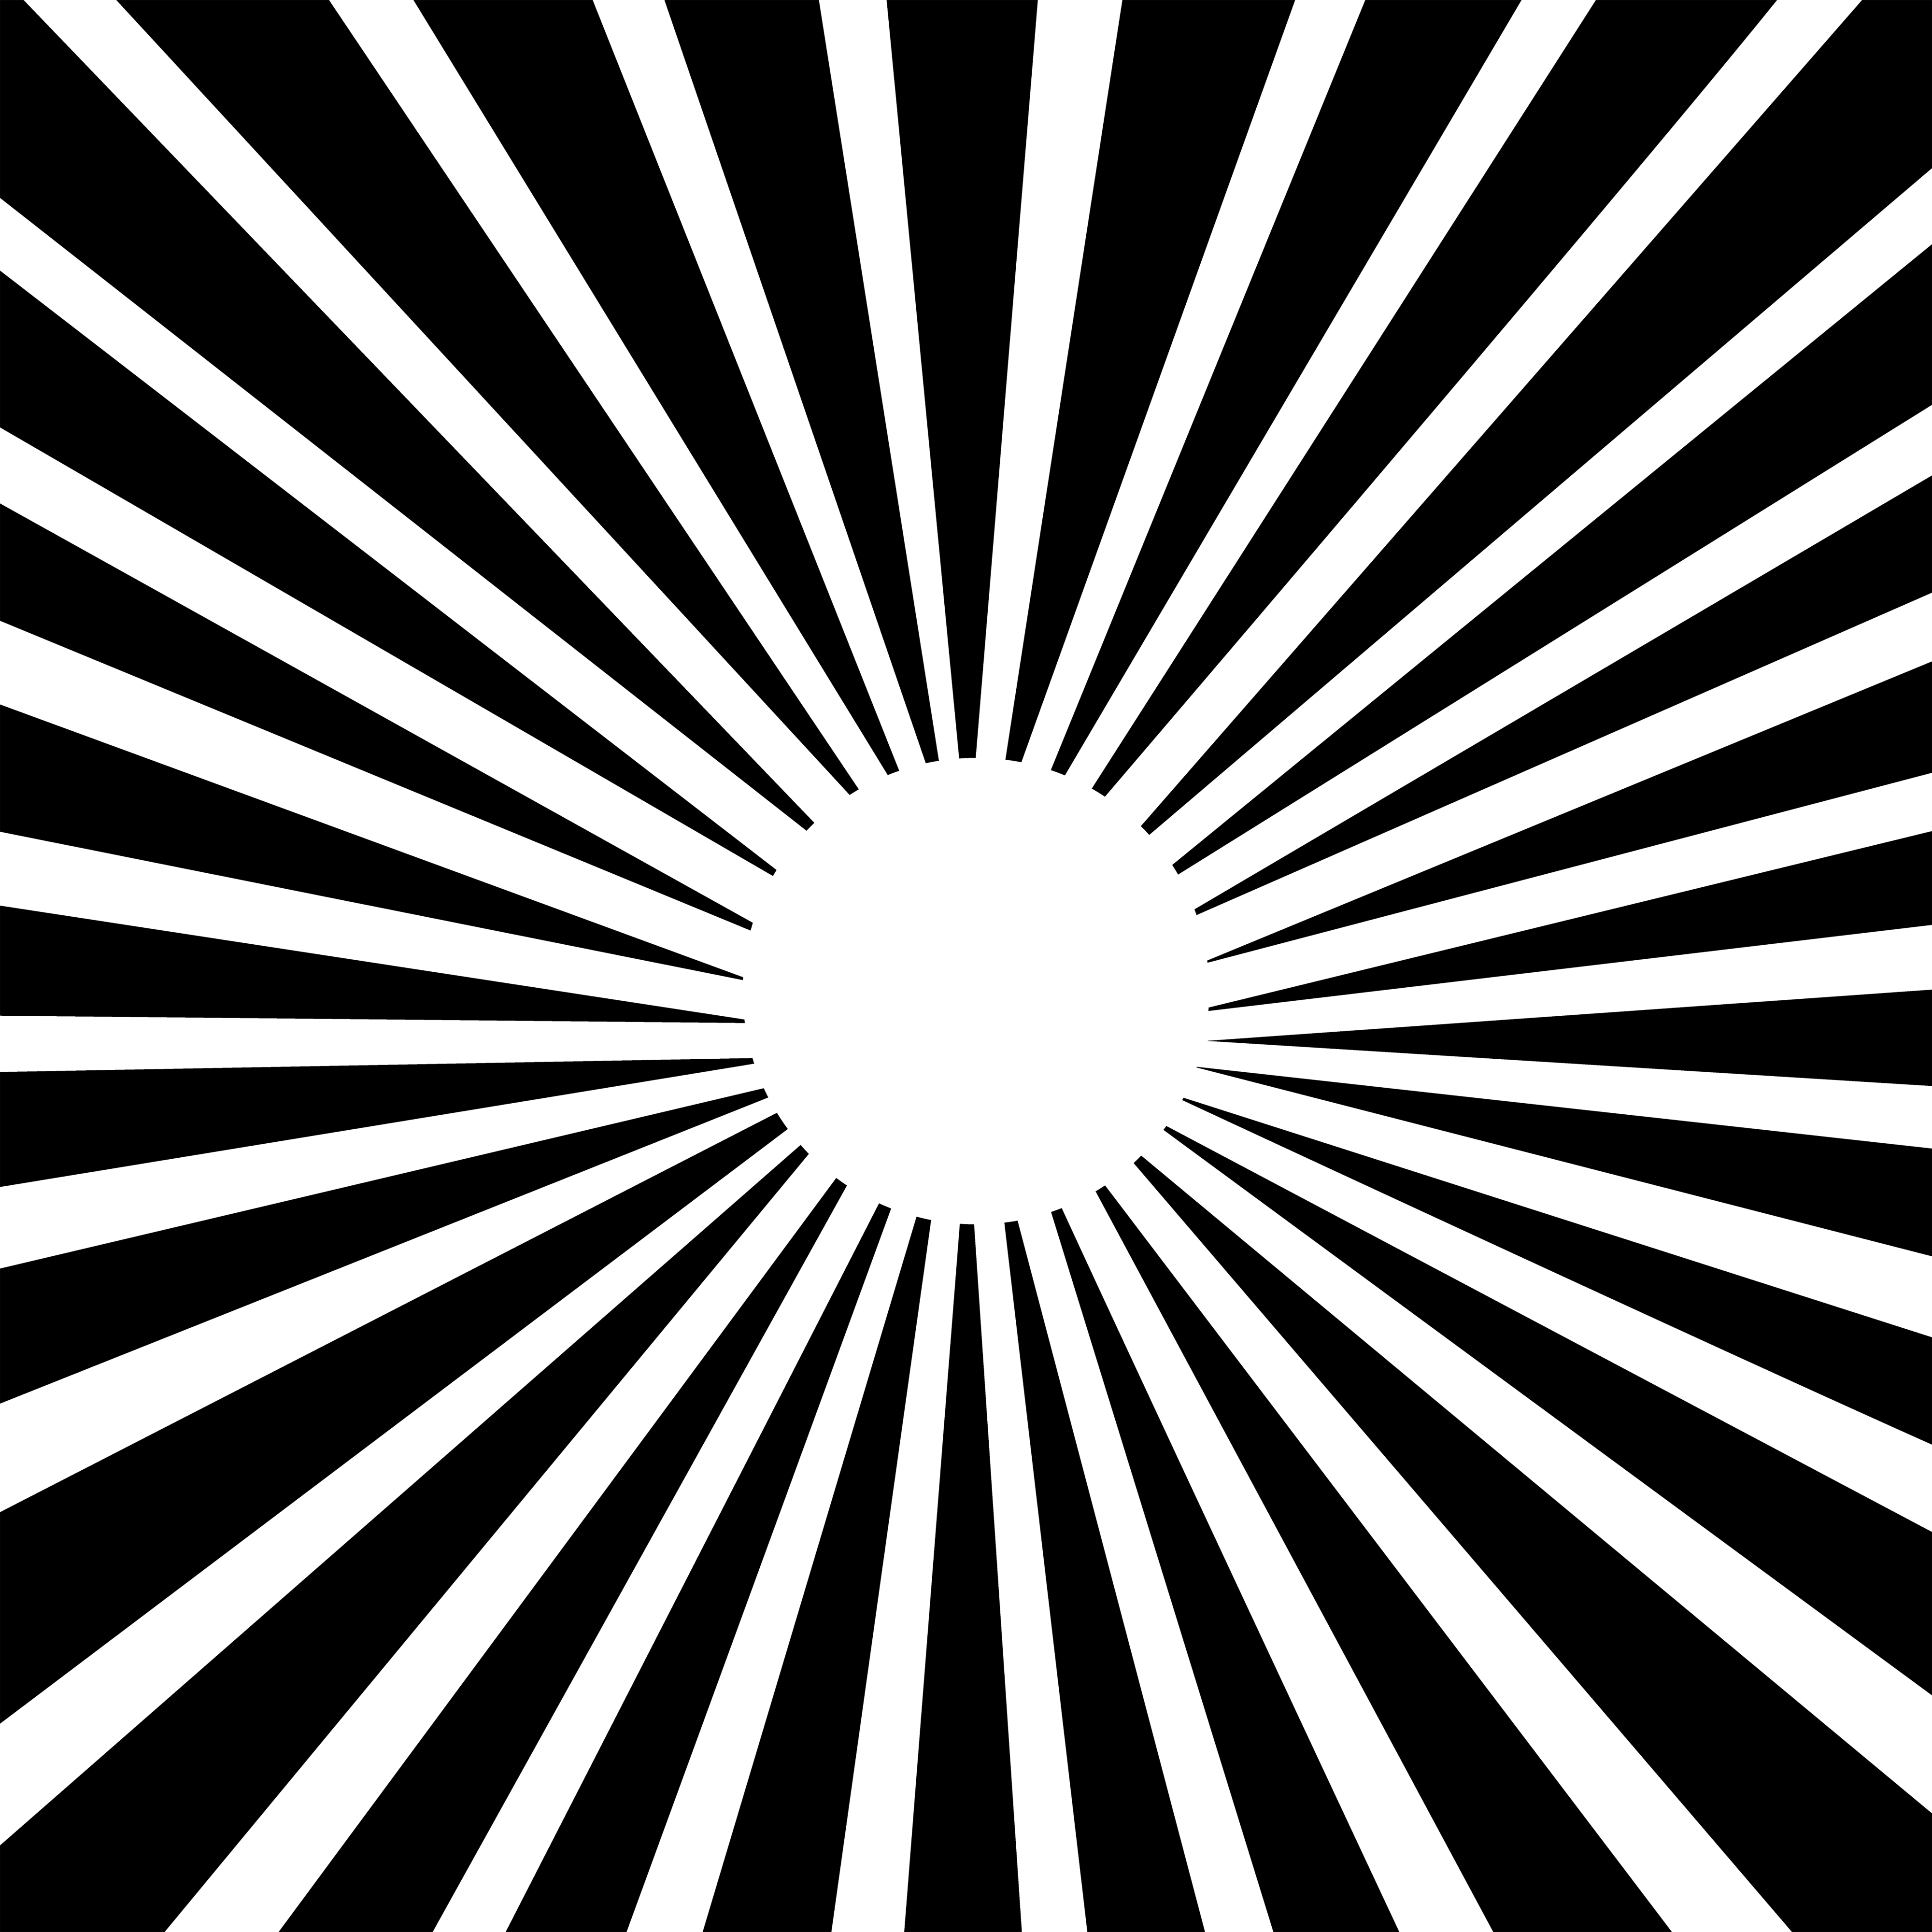 Google Image Result For Http Sweetclipart Com Multisite Sweetclipart Files Line Burst Sun Patt Black And White Lines White Pattern Background Black And White